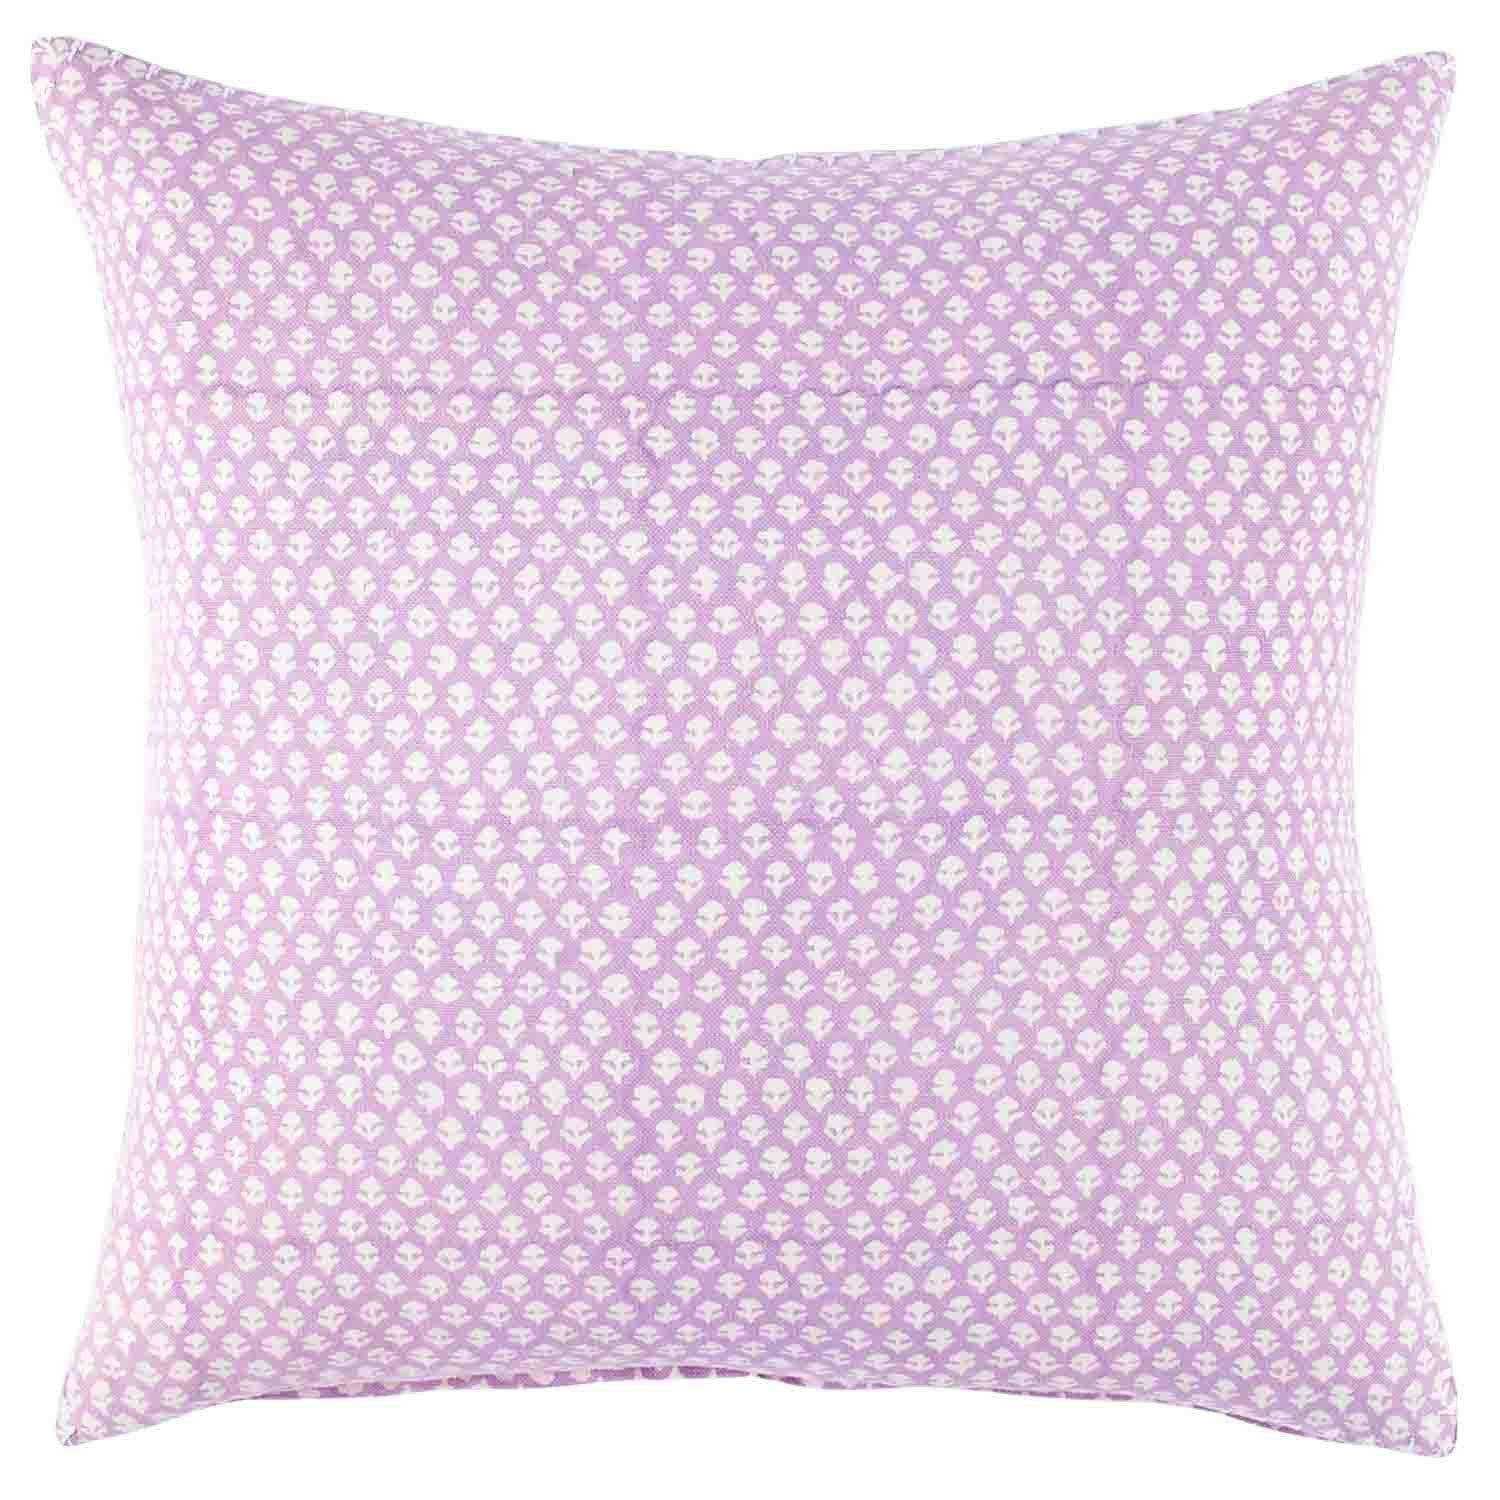 John Robshaw Bindi Lavender Decorative Pillow Childrens Bedroom